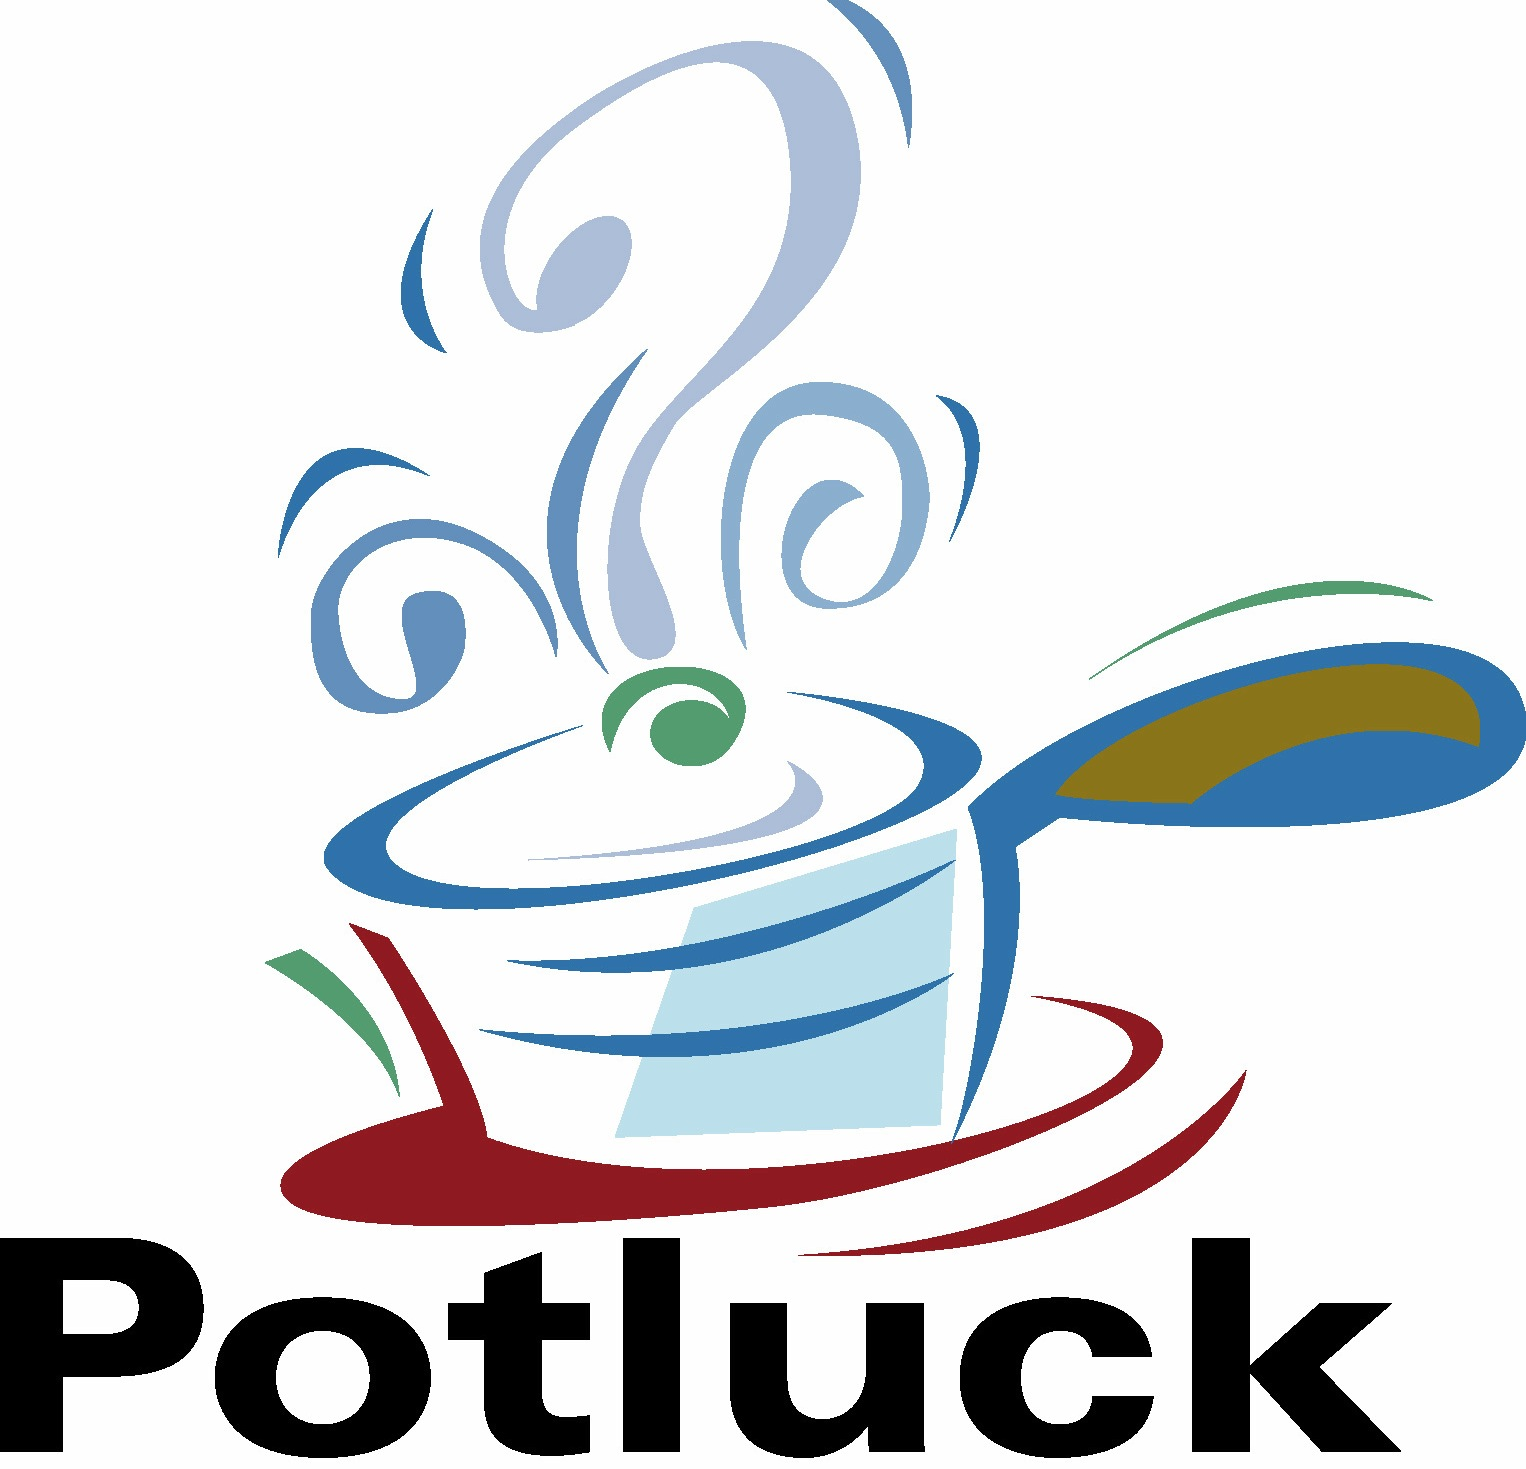 Potluck . Luncheon clipart lunch order